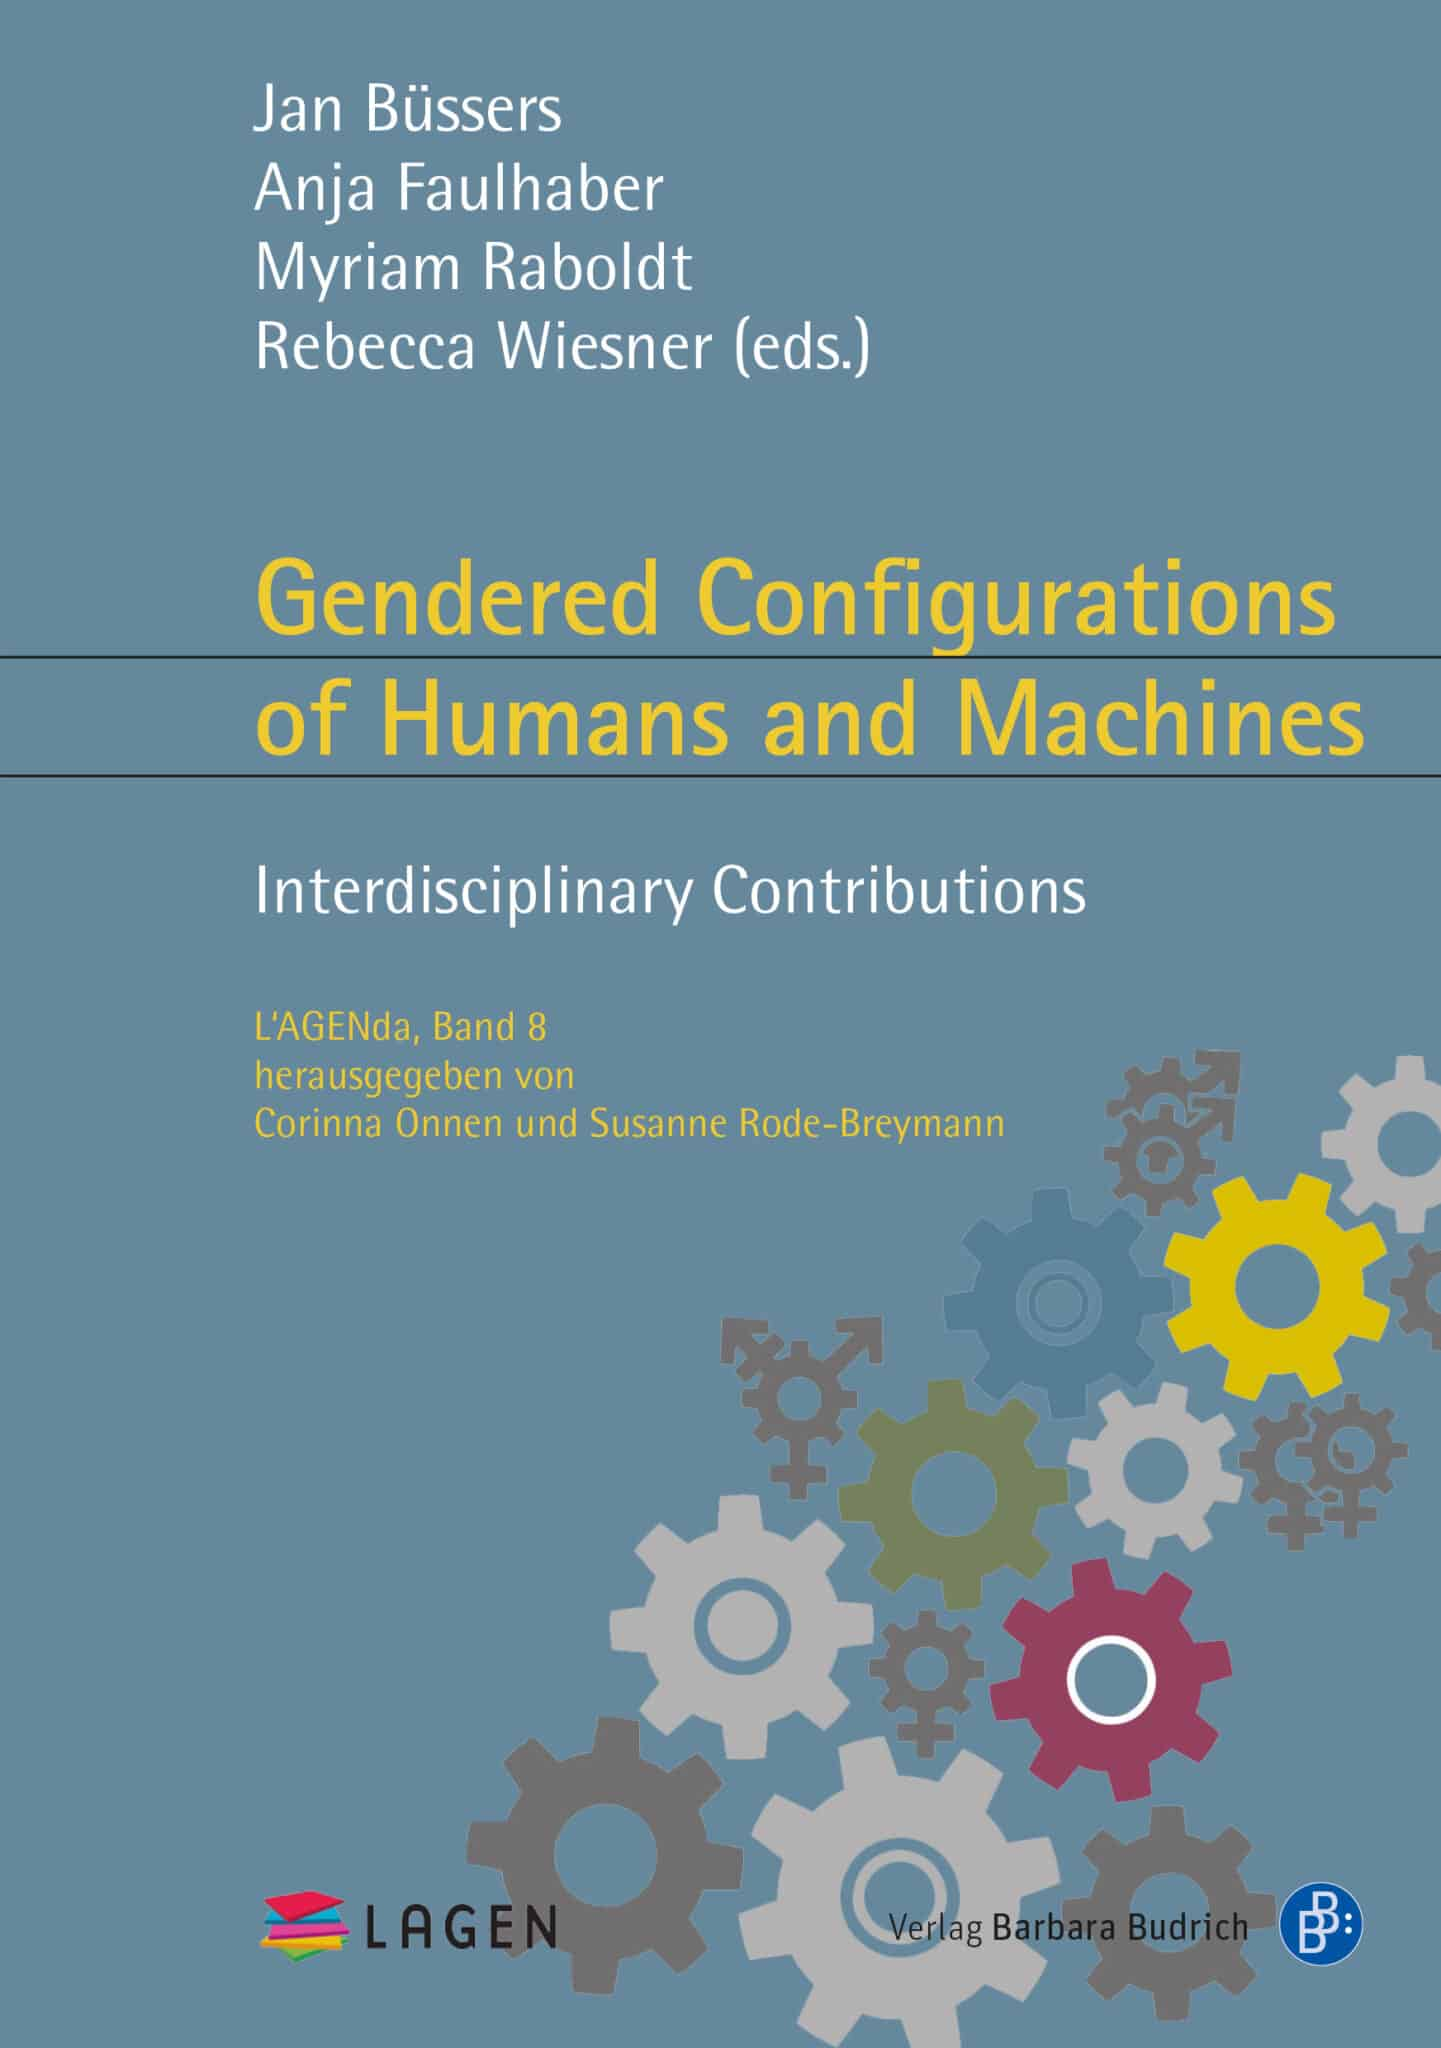 Büssers et al. (eds.): Gendered Configurations of Humans and Machines. Interdisciplinary Contributions. Verlag Barbara Budrich. ED:15.02.2021